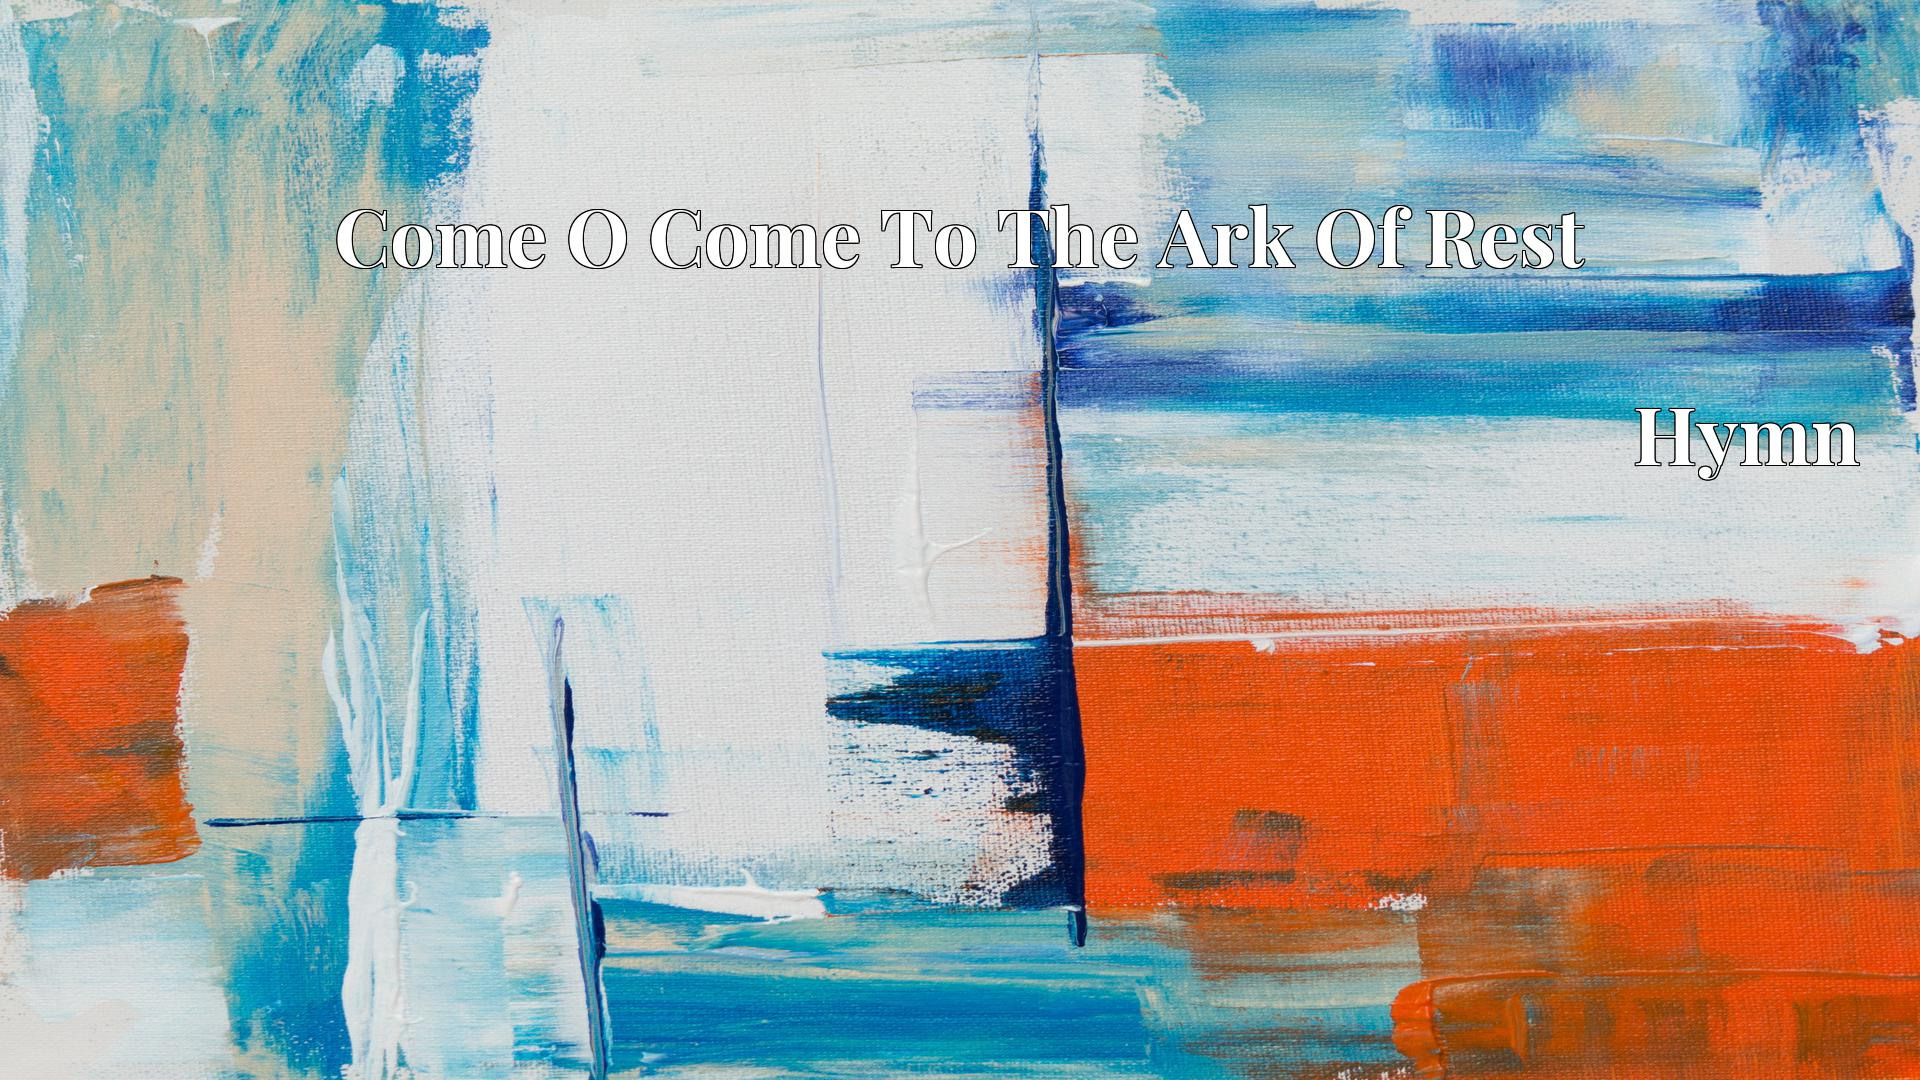 Come O Come To The Ark Of Rest - Hymn